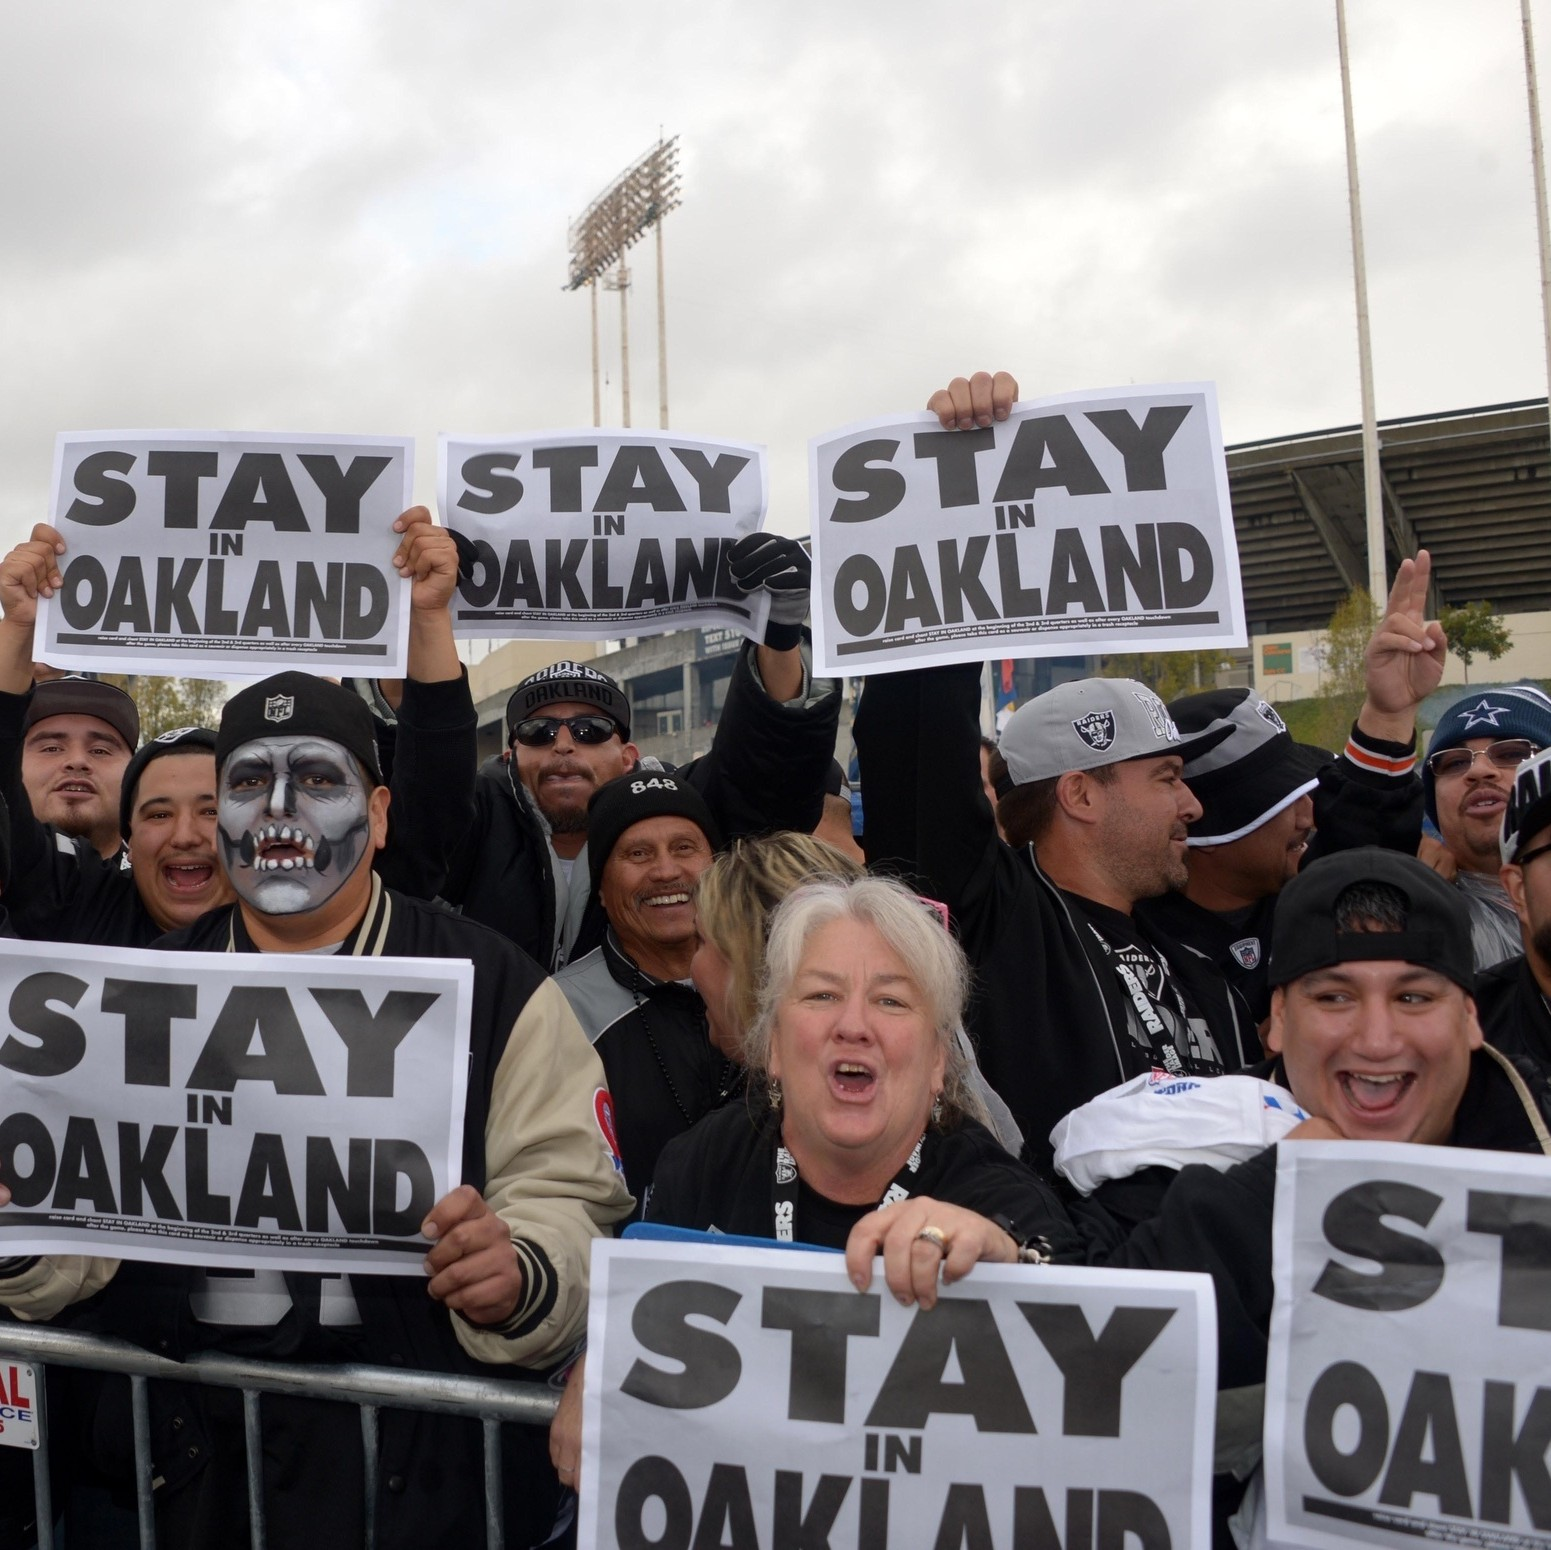 The-nfls-best-chance-to-solve-the-oakland-raiders-question-1466636203.jpg?crop=0.6296296296296297xw:1xh;0